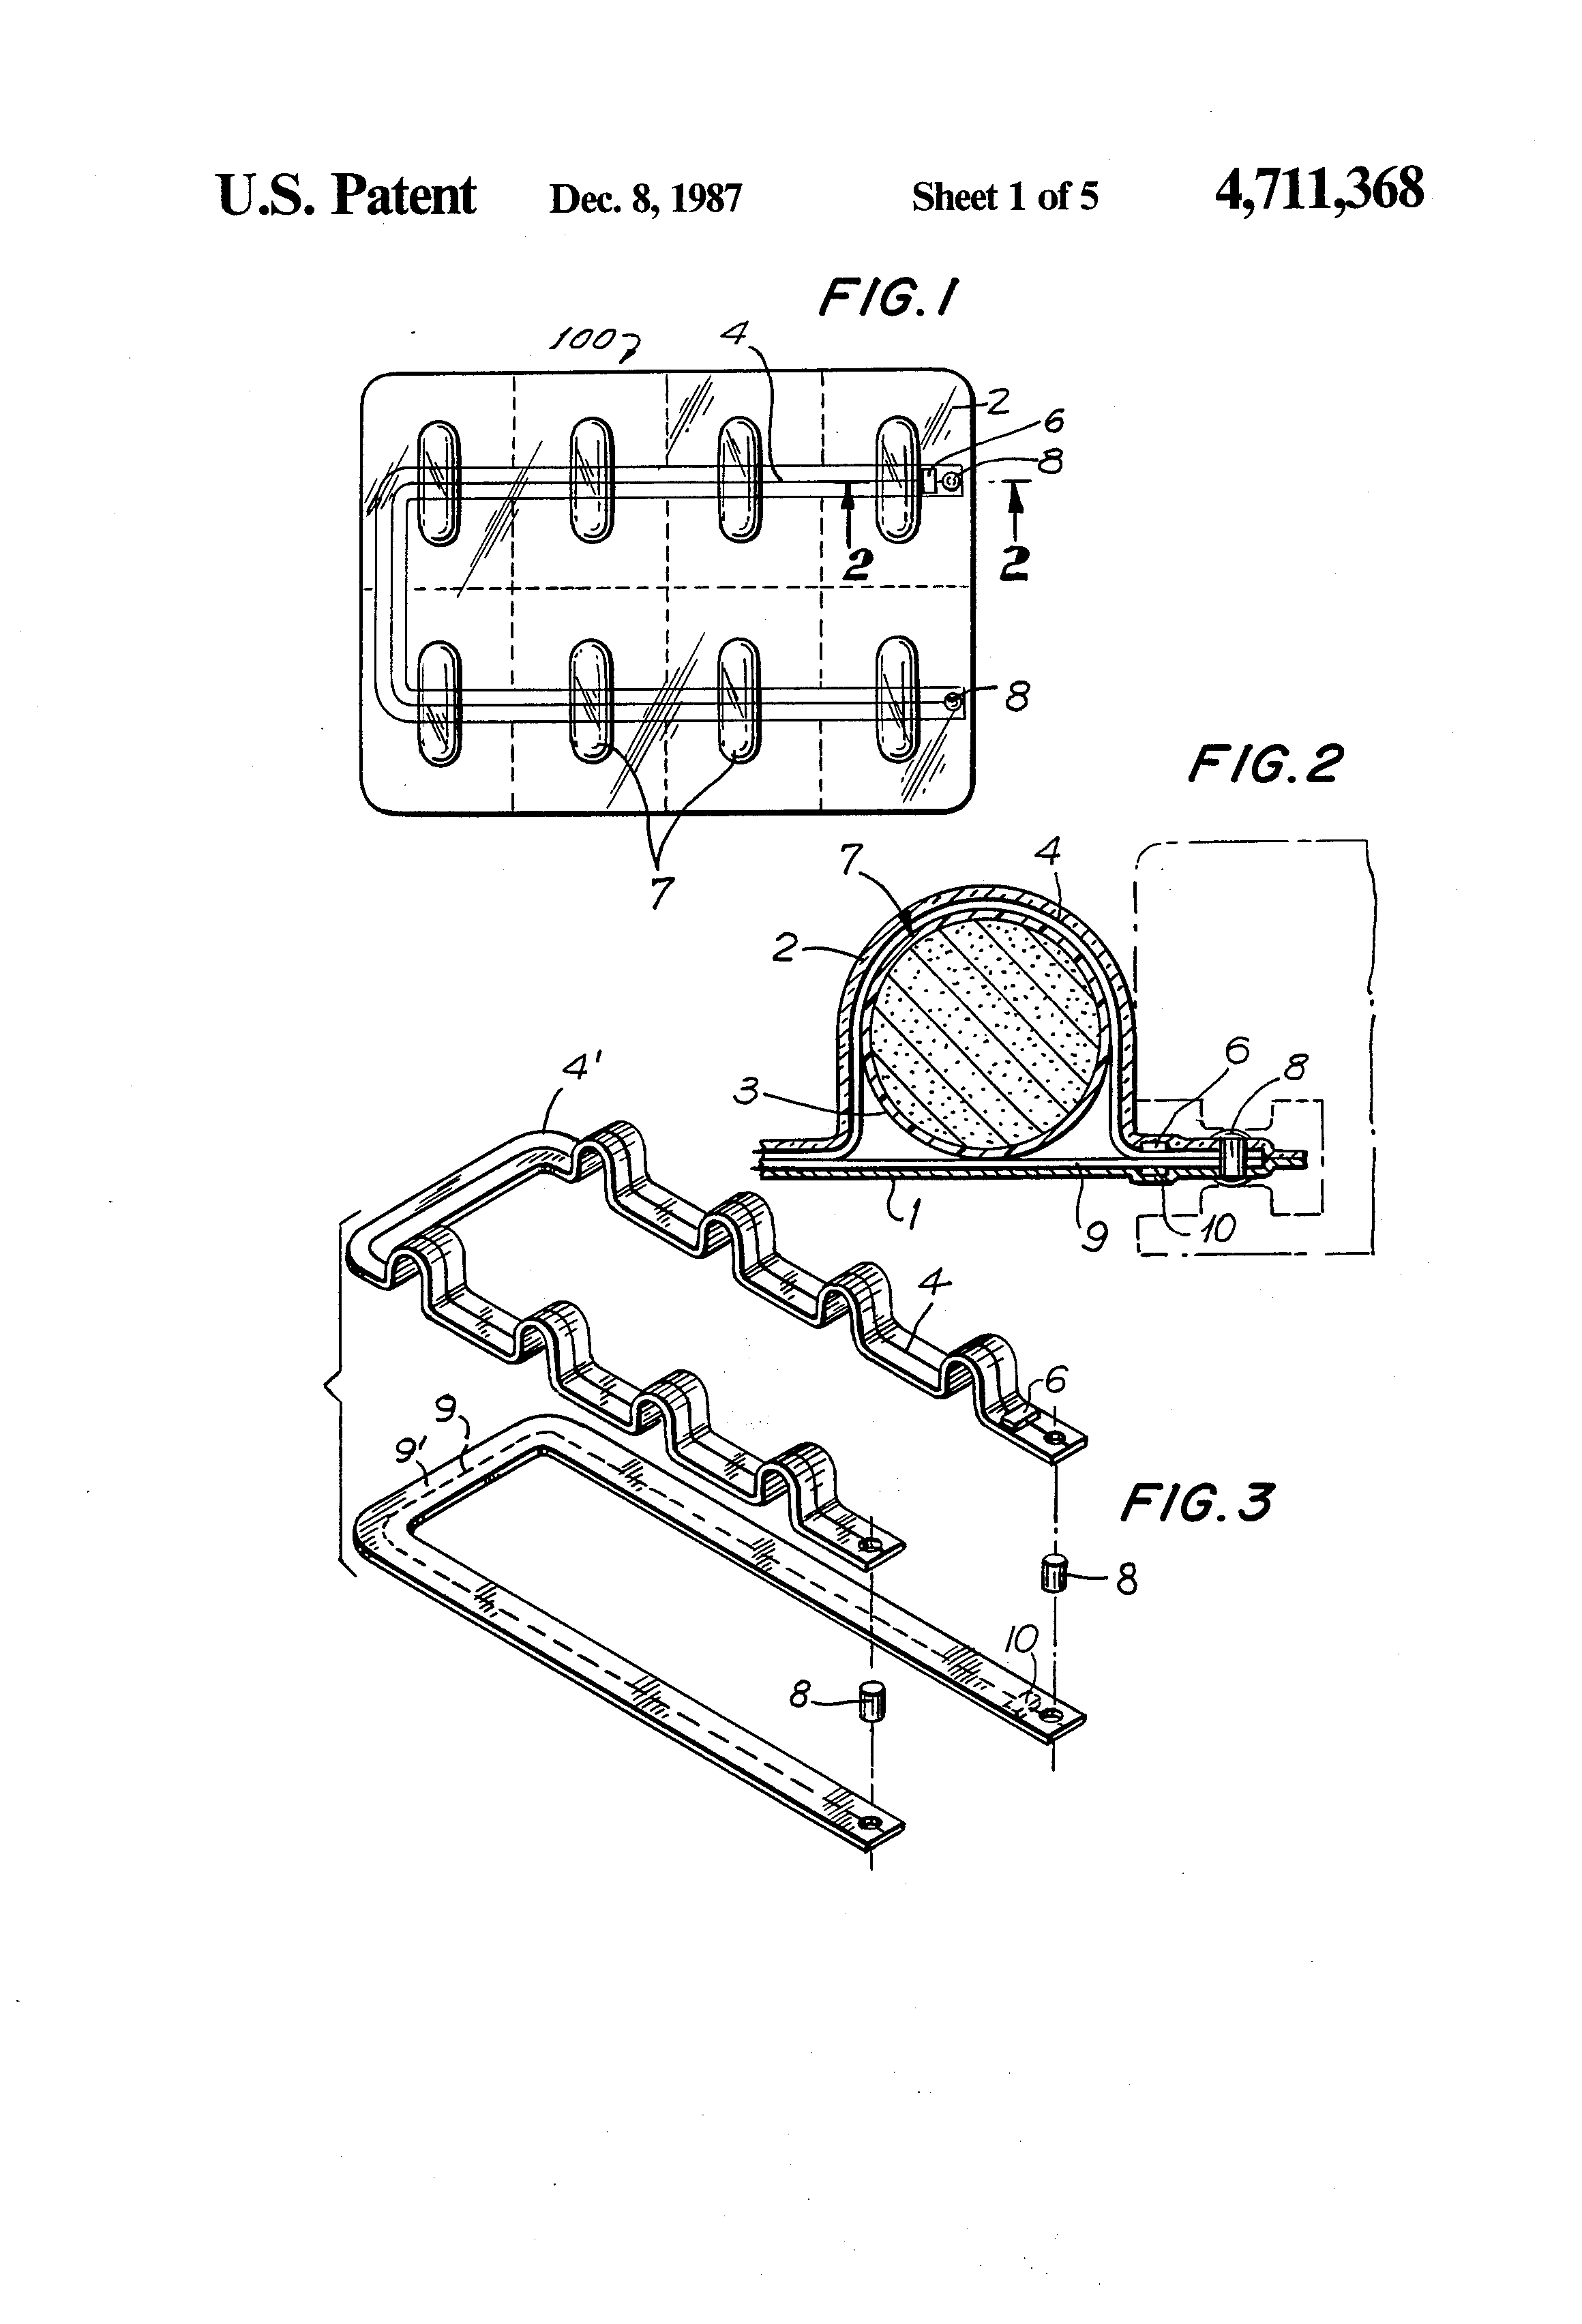 Brevet Us4711368 Tamper Proof Package With Electrical Circuit Trigon Wiring Diagram Patent Drawing